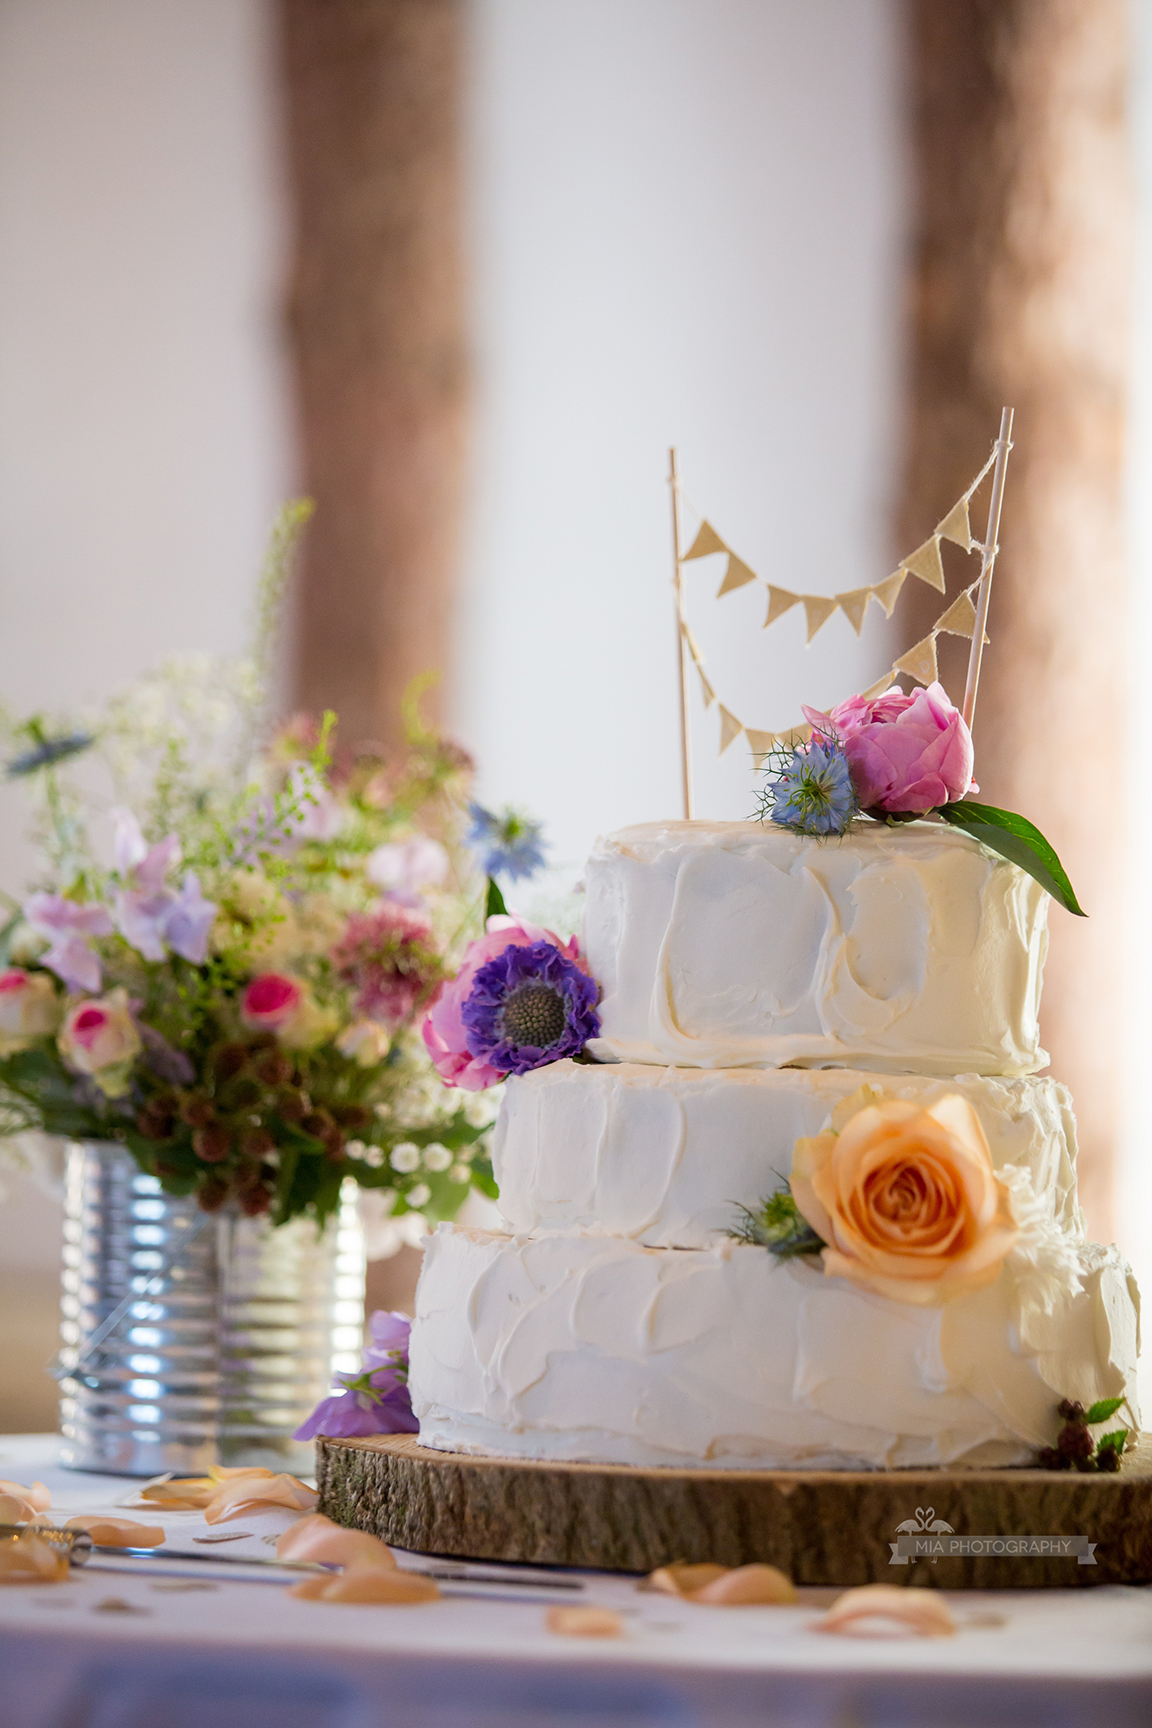 Buttercream wedding cake with flower decorations